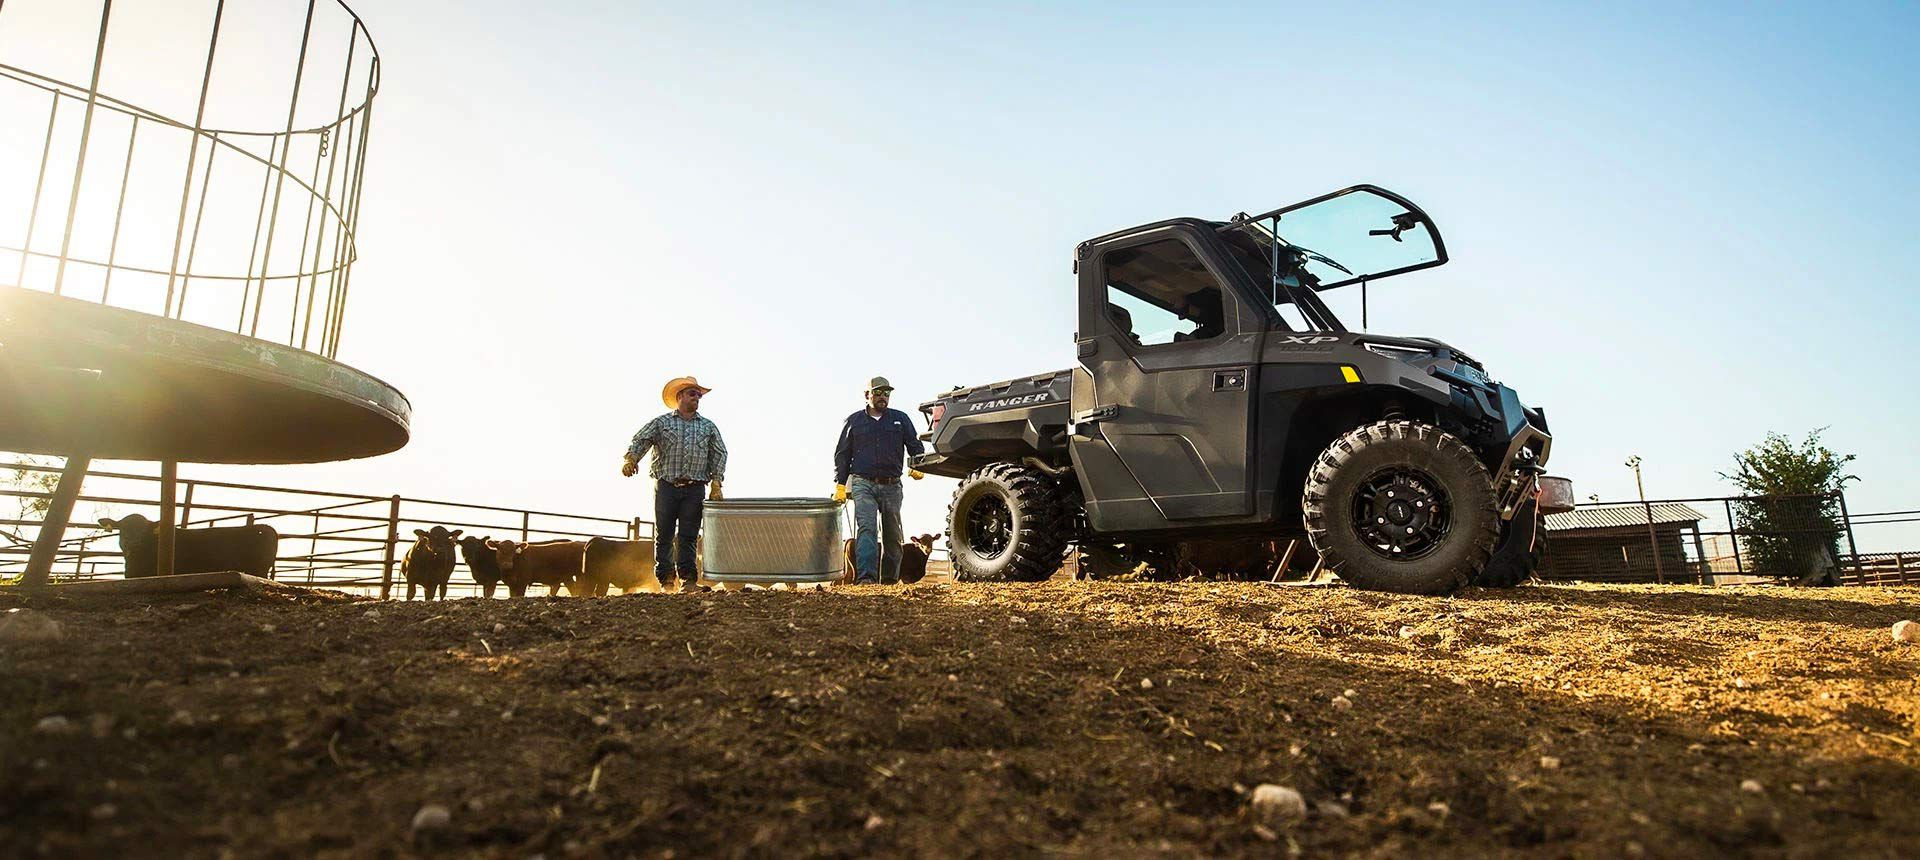 The 2022 Polaris Ranger XP 1000 comes in a wide array of trims and specs, and they're all equally at home at work or play.